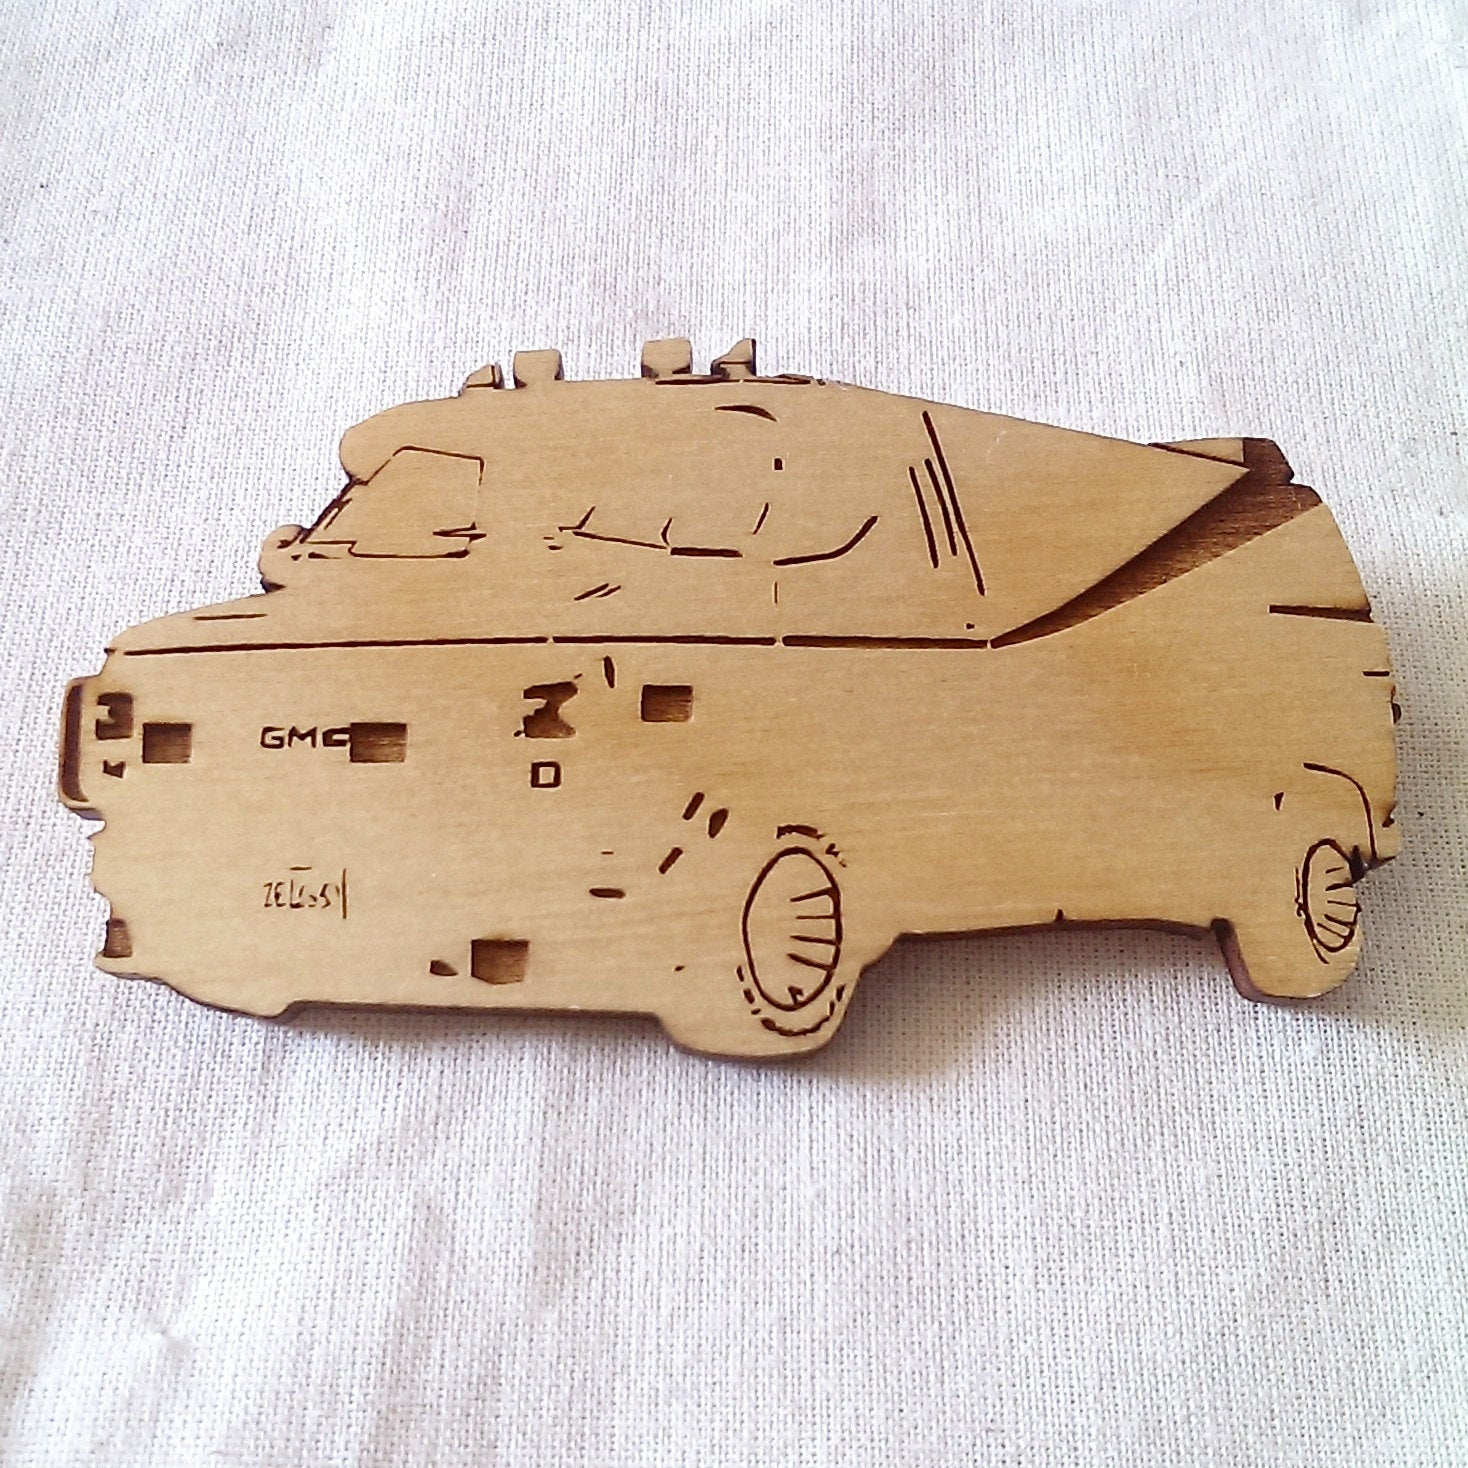 Limited Edition,GMD Van, A Team Van, The A Team, Wood cut, Lasercut, Key Ring, Magnet, Brooch - ByCandlelight27